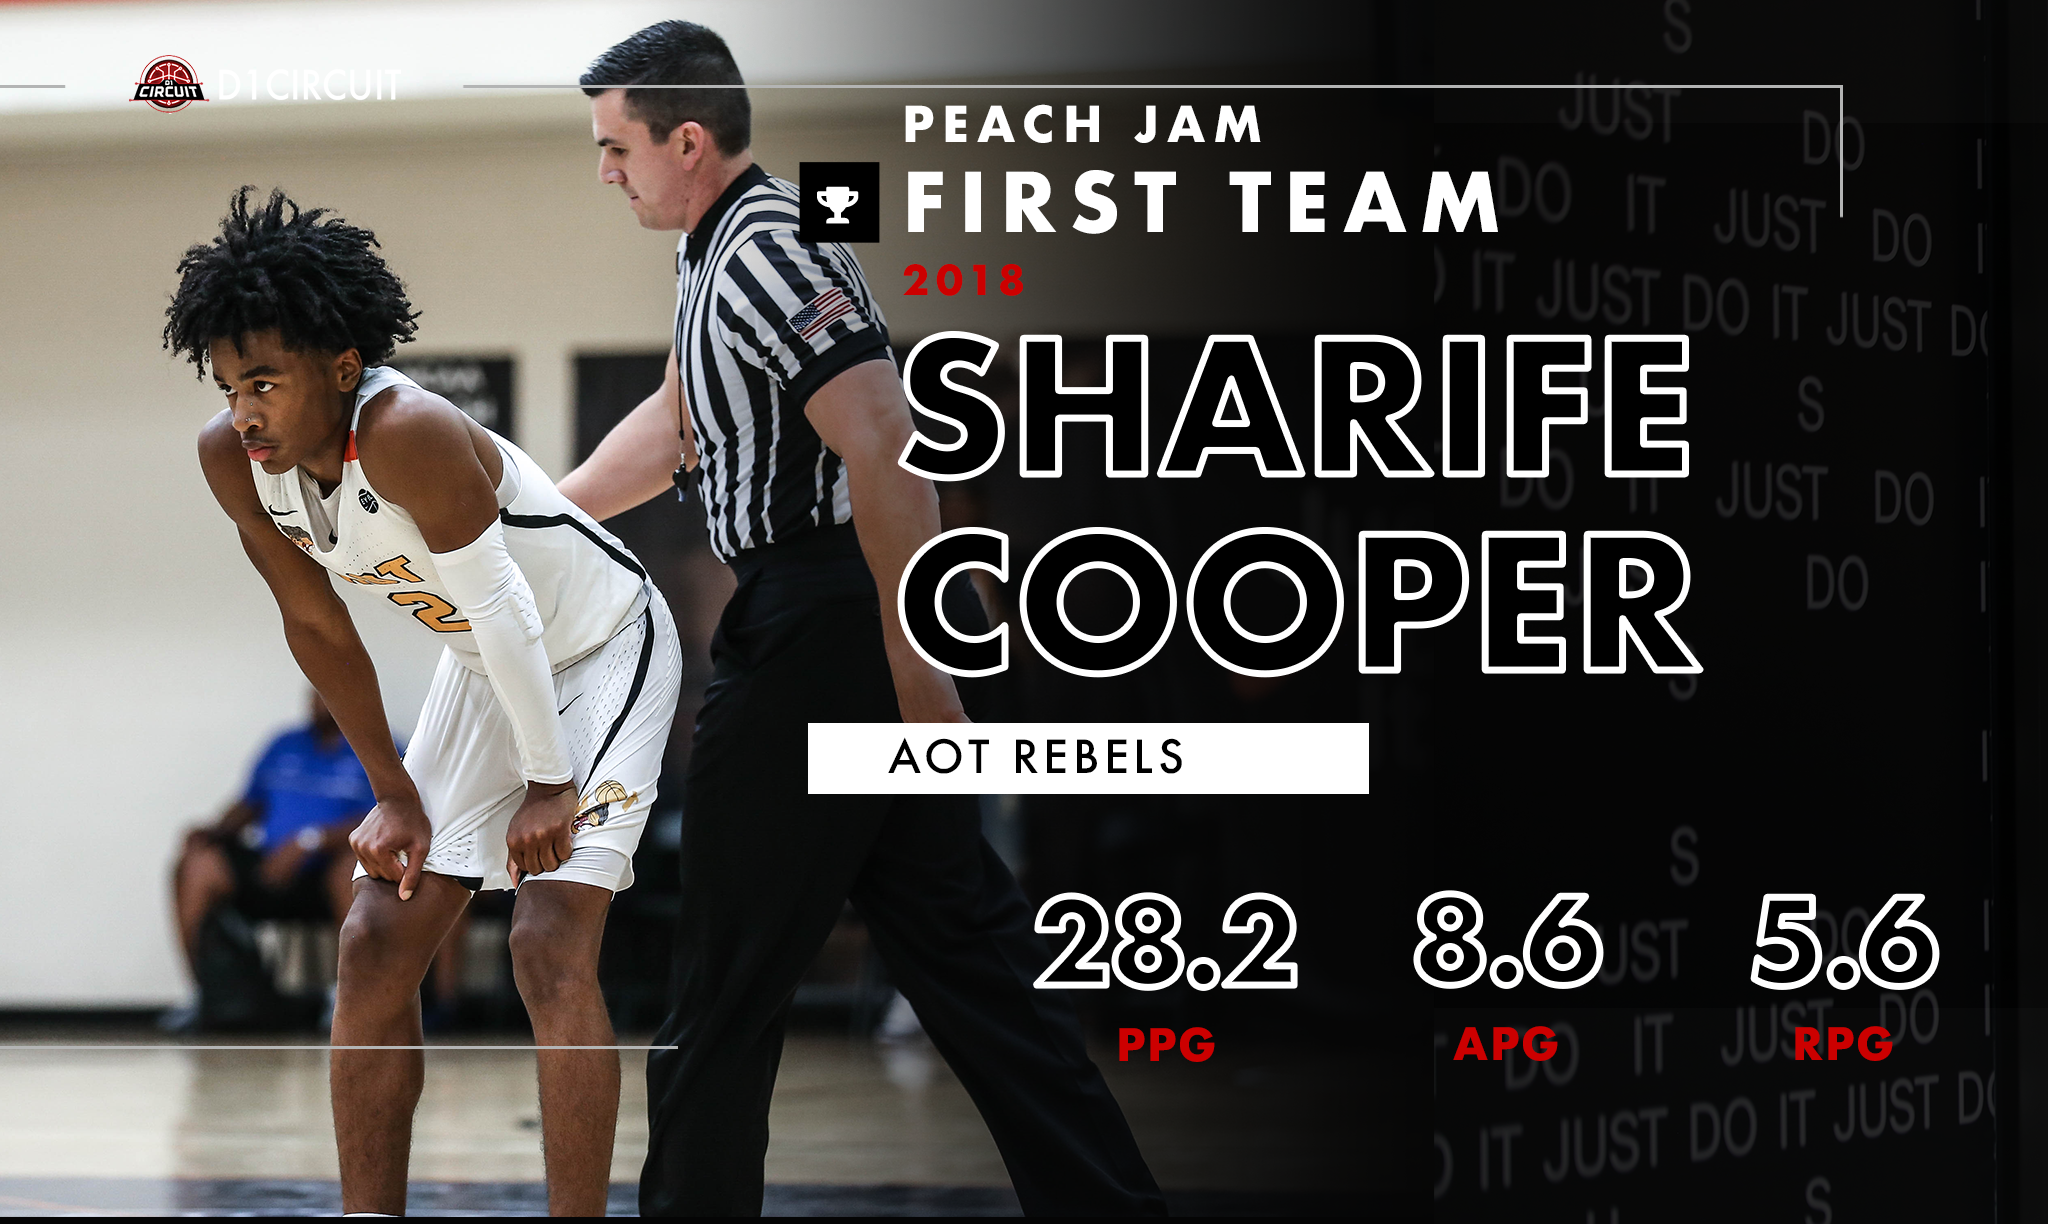 new style 7ec45 4a2b1 On top of his offensive performer honor, Cooper was also named  Co-Underclassmen of the Peach Jam, sharing the honor with teammate BJ  Boston.